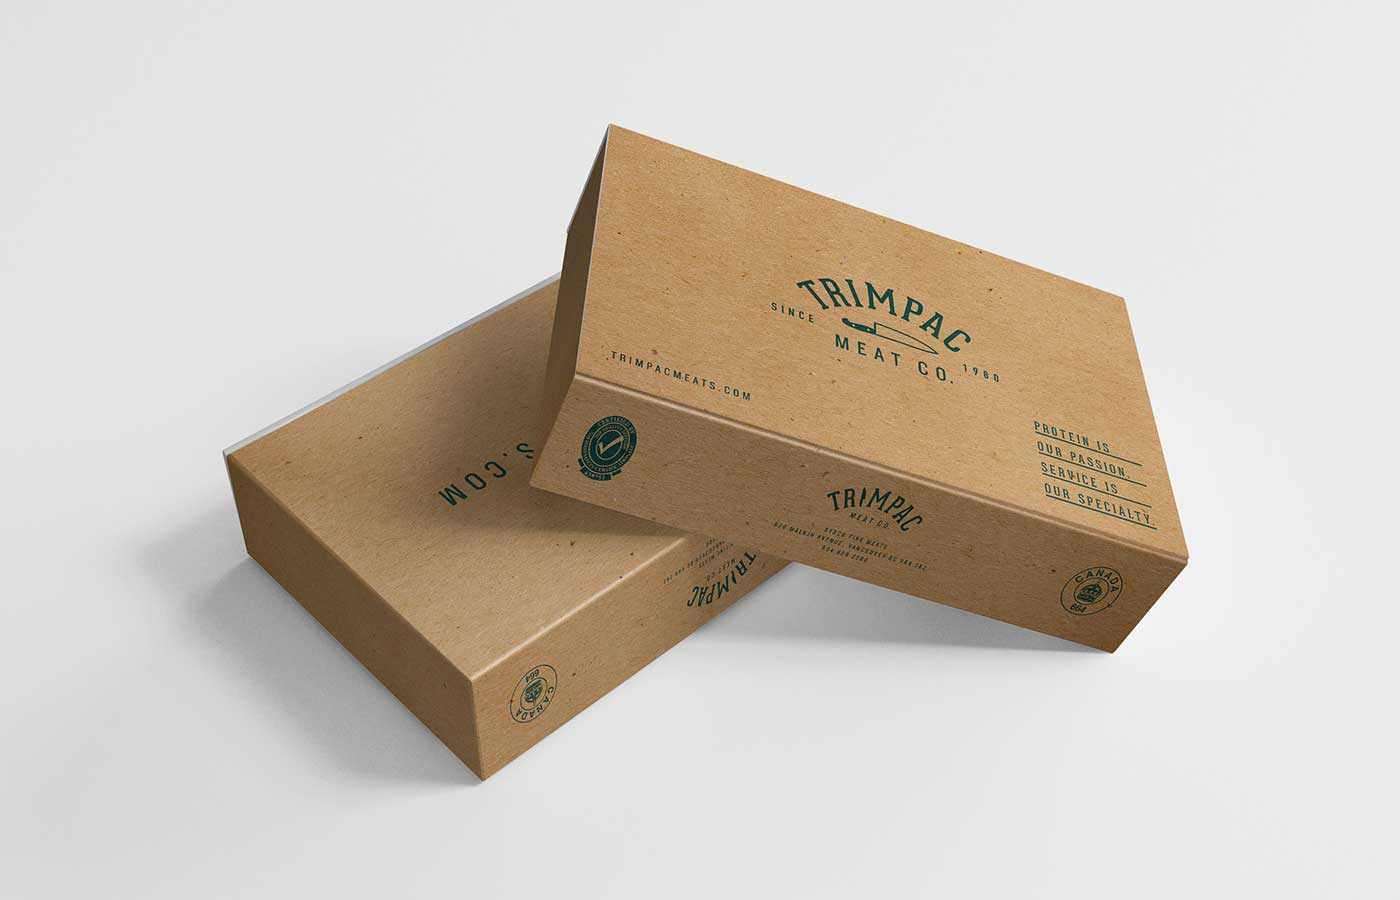 covetdesign_logo-design_branding_package-design_graphic-design_vancouver_work_wide_trimpac-boxes